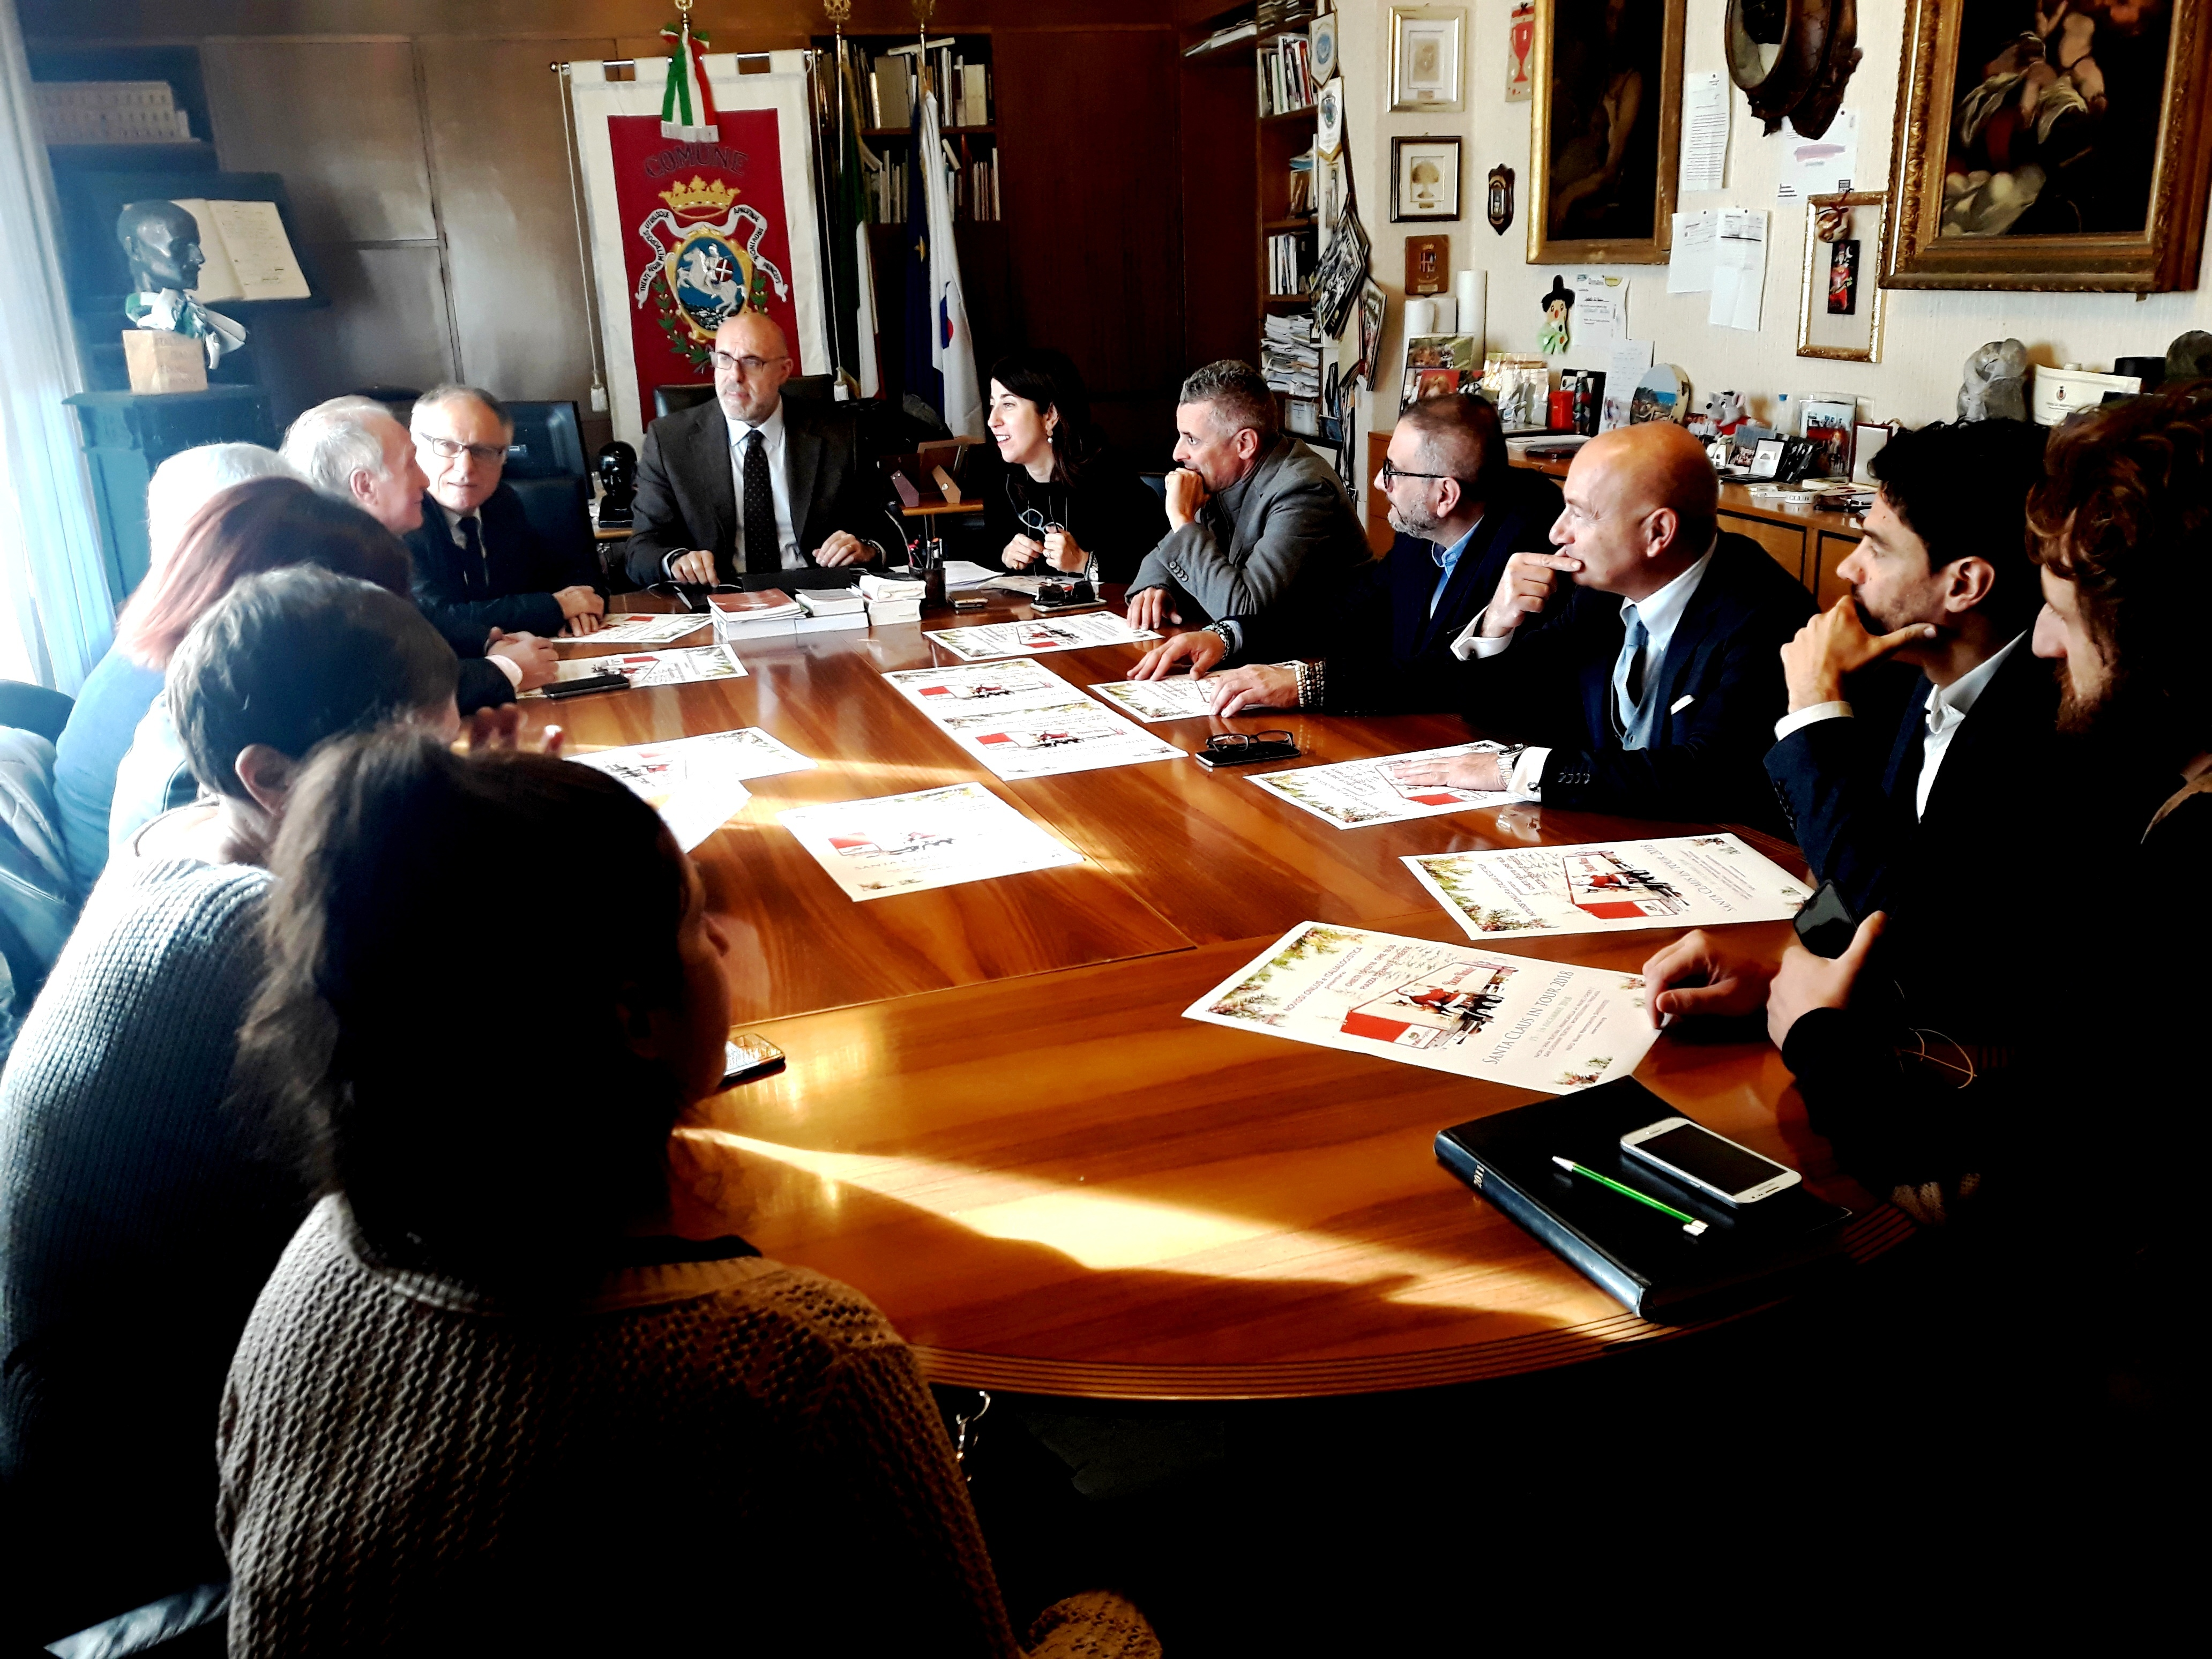 conferenza santa claus in tour